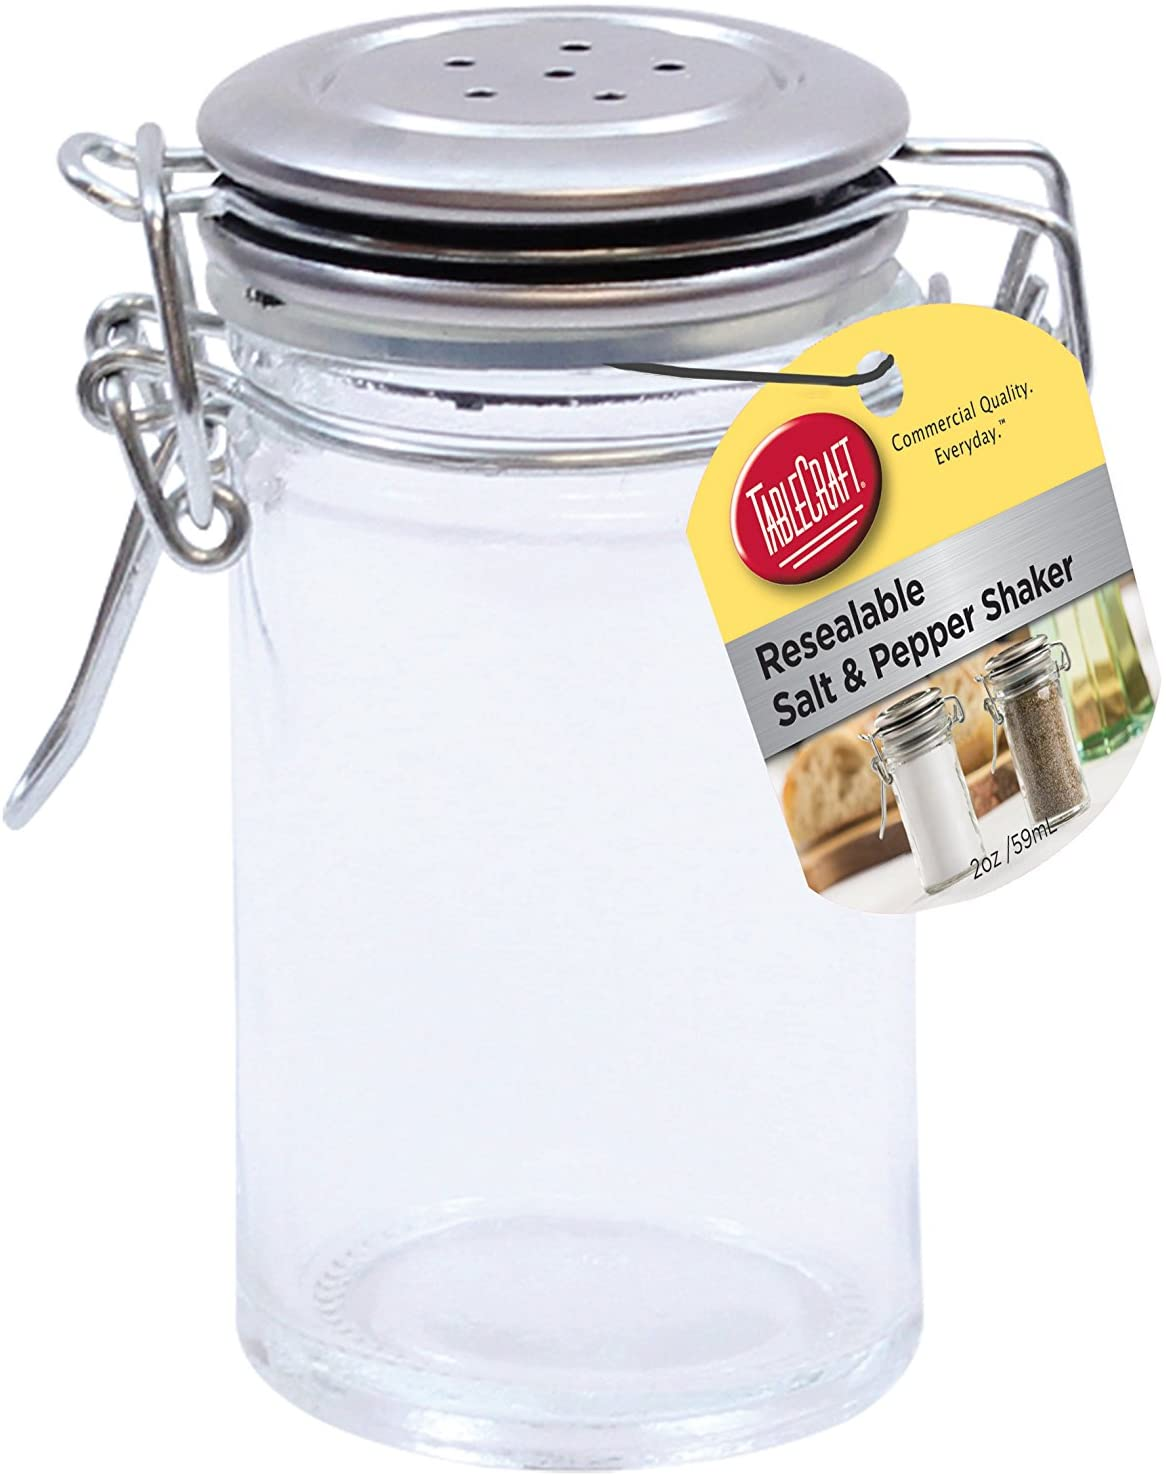 TableCraft's 2-Ounce Resealable Salt & Pepper Shaker, Glass Jar with Stainless Steel Clip-Top Lid, Clear